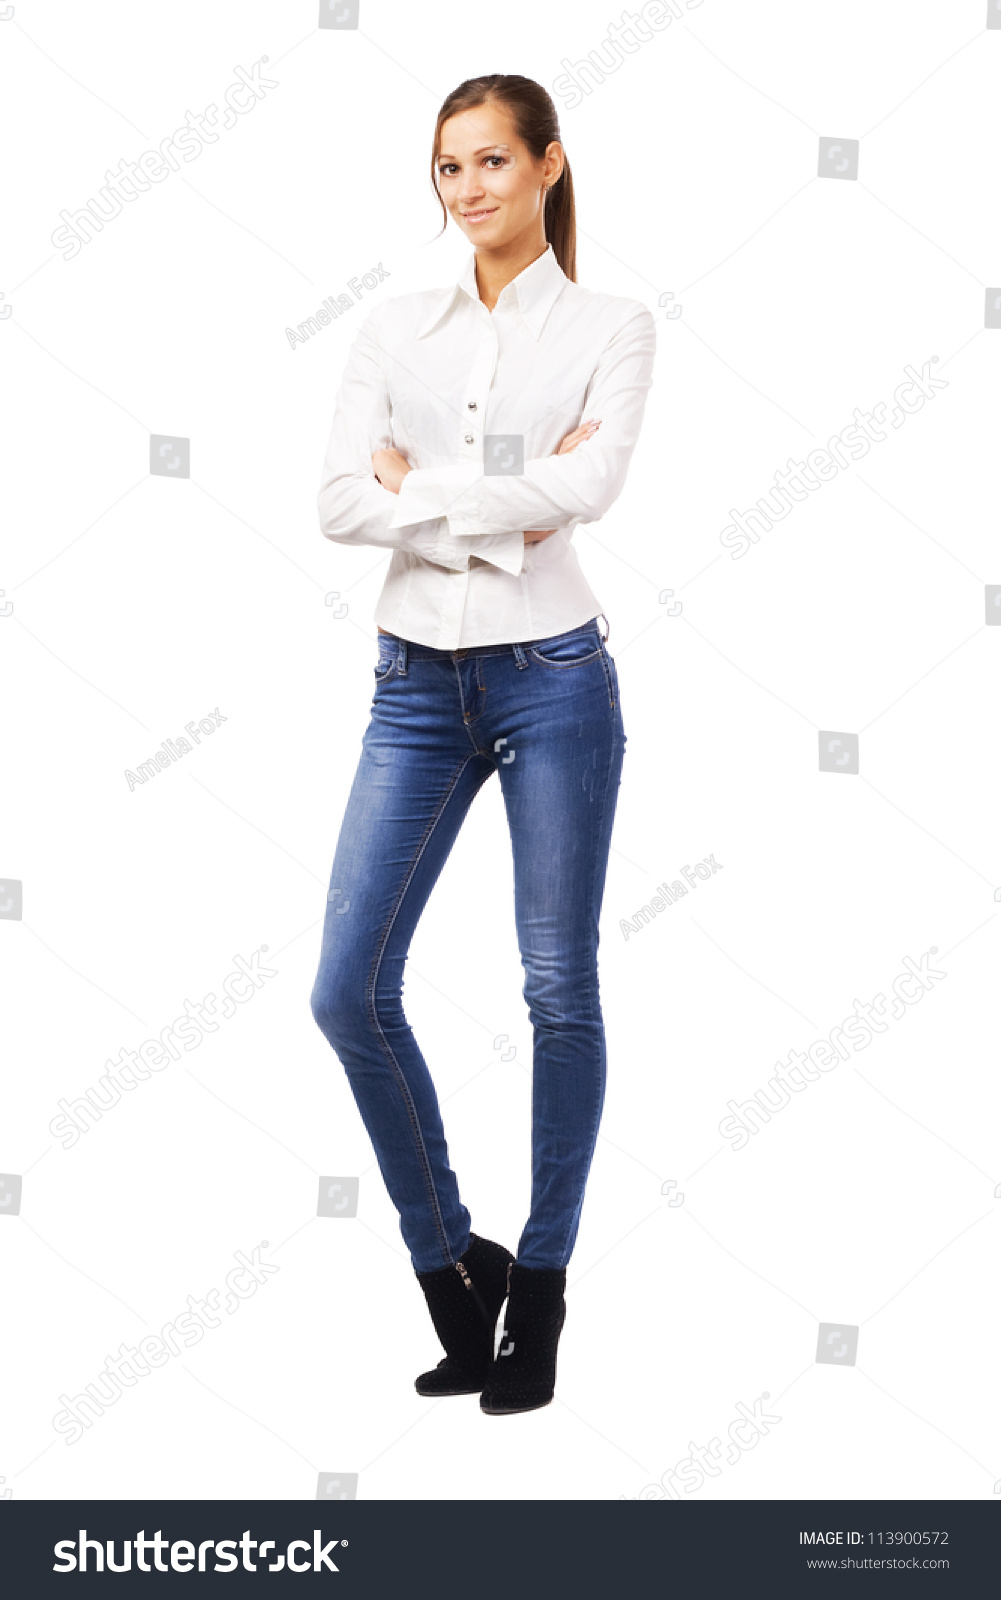 Lovely Woman White Shirt Blue Jeans Stock Photo 113900572 ...